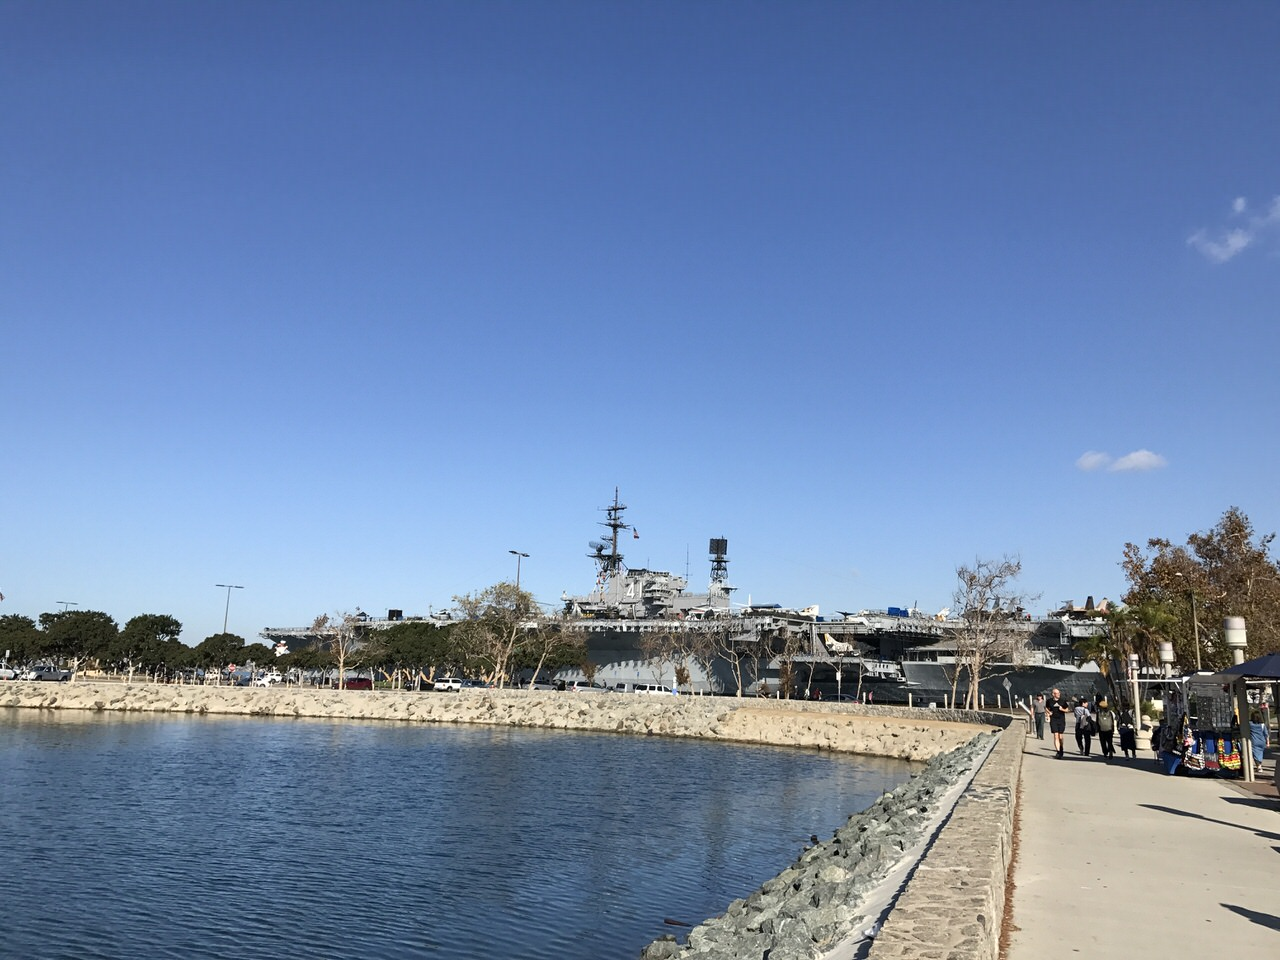 Uss midway museum 0541